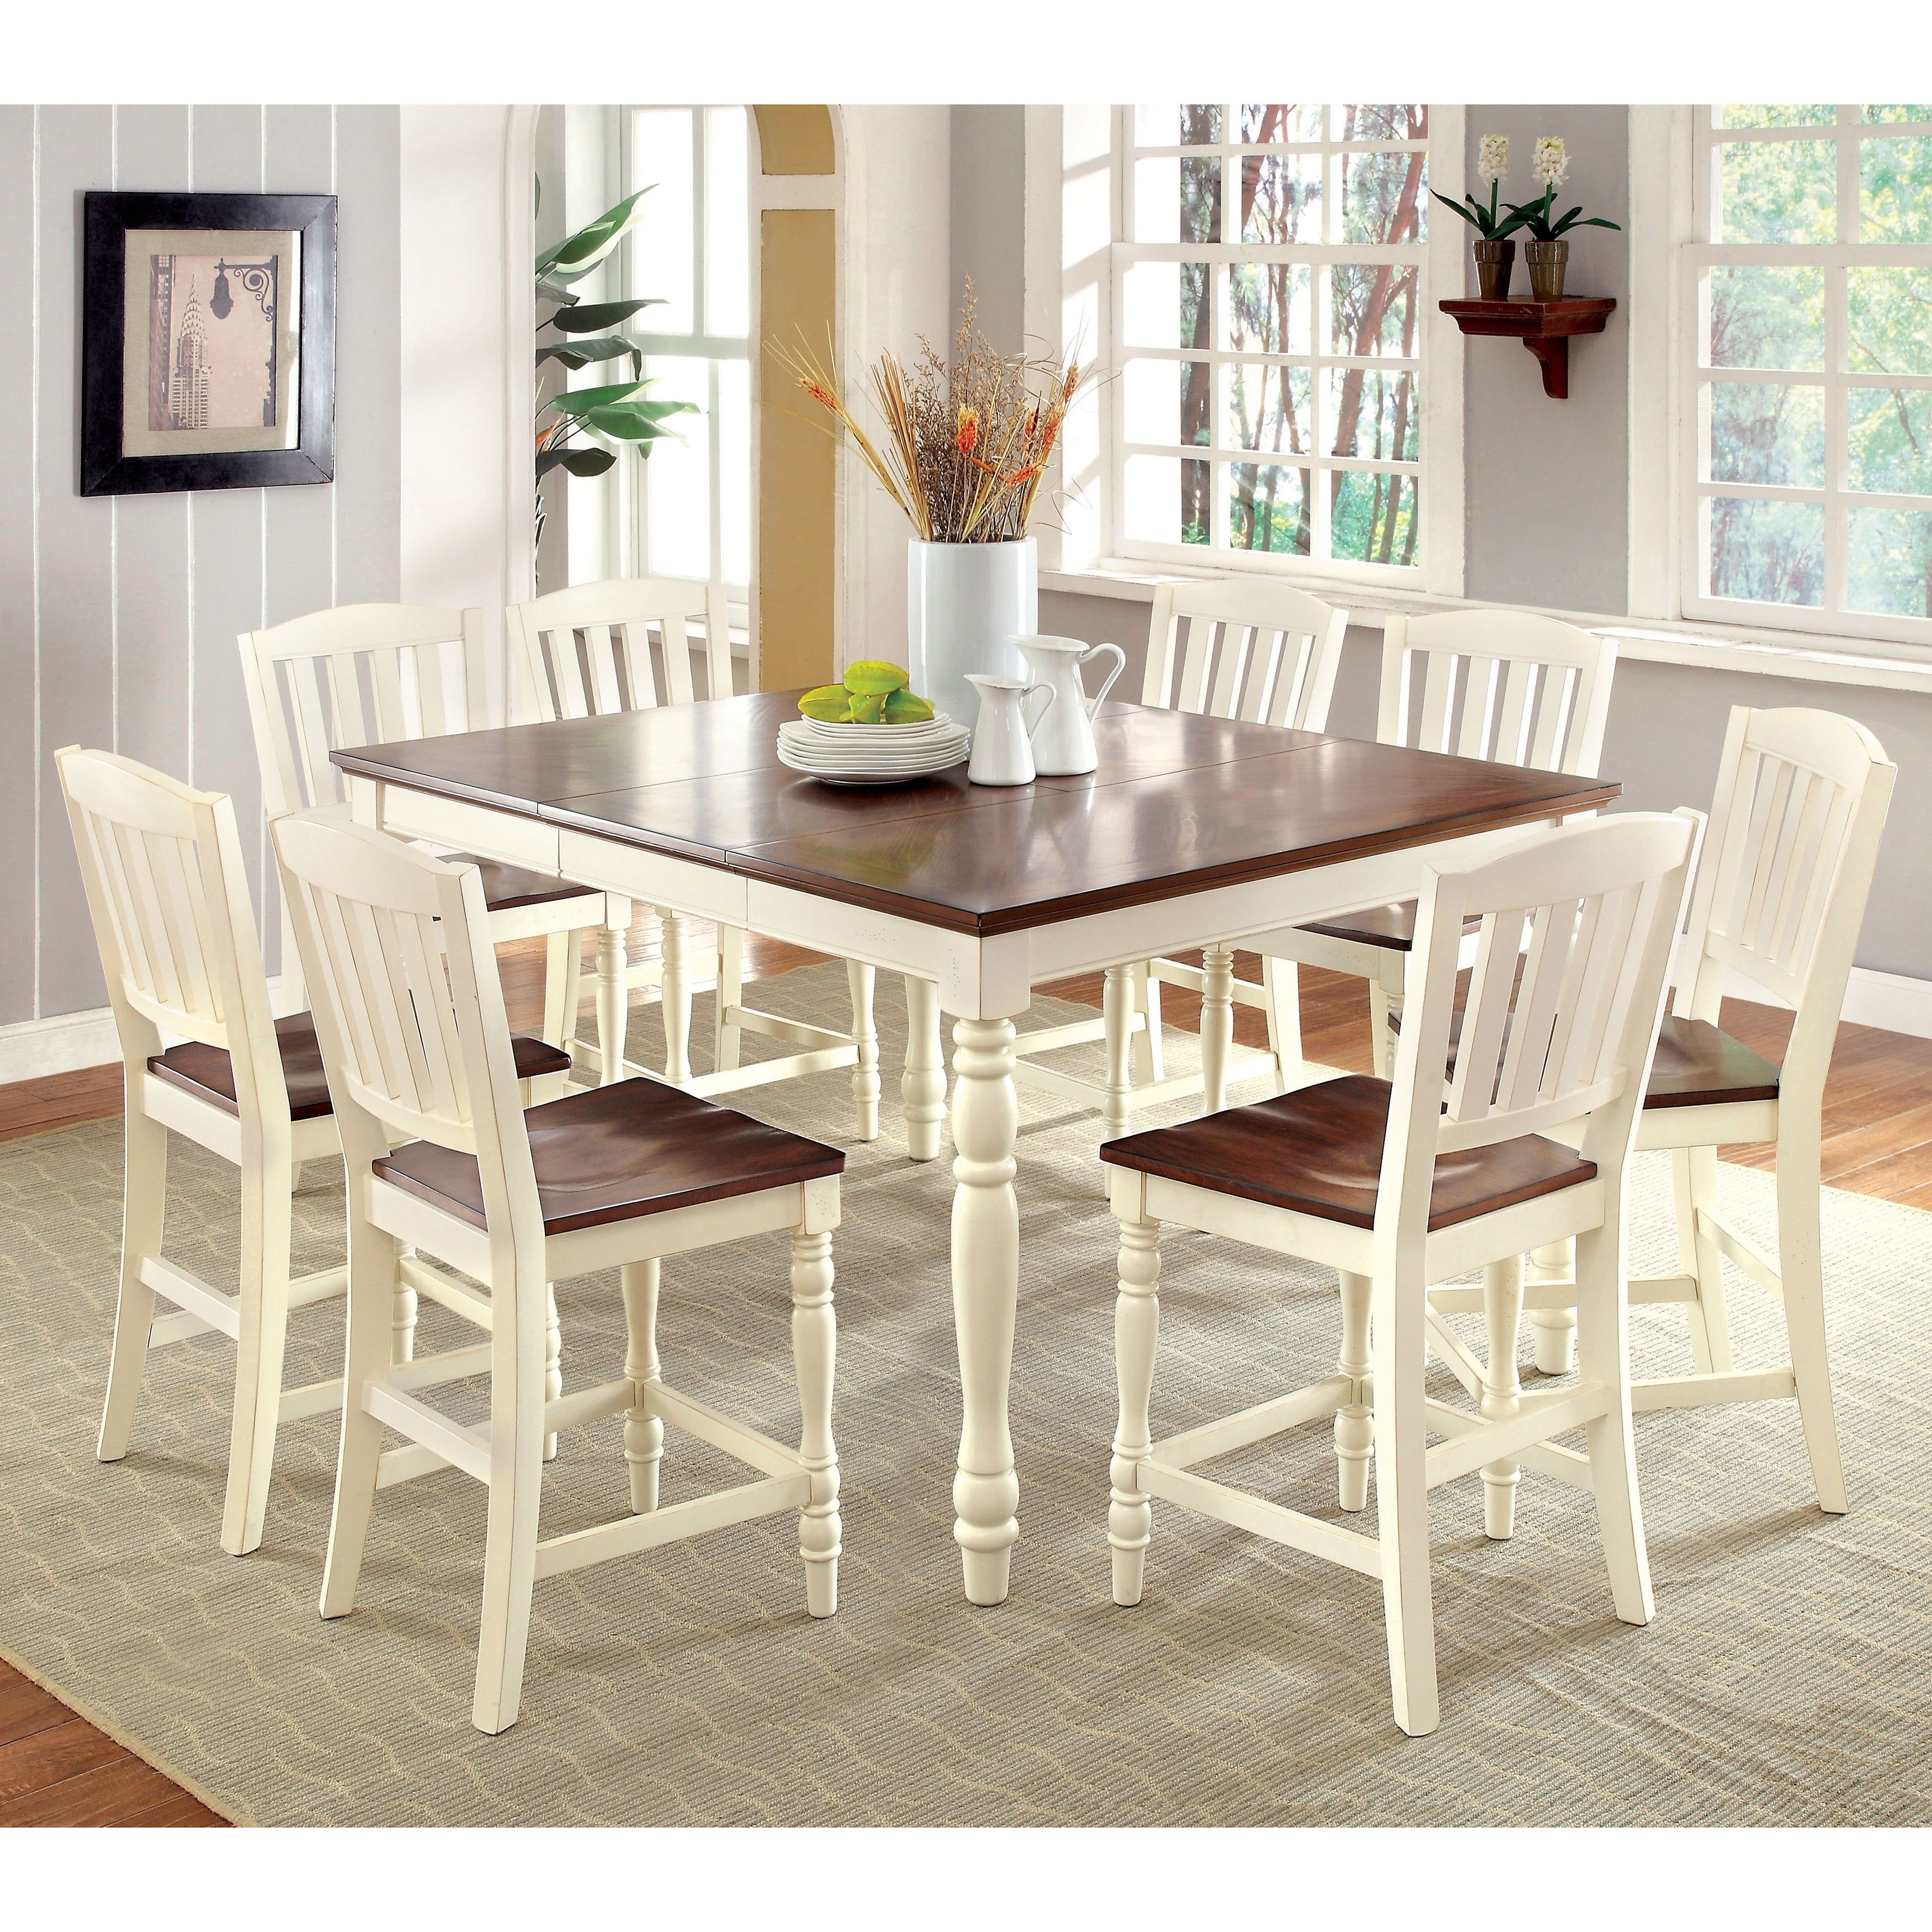 chairs furniture for set white sale dining beach cottage style cottages